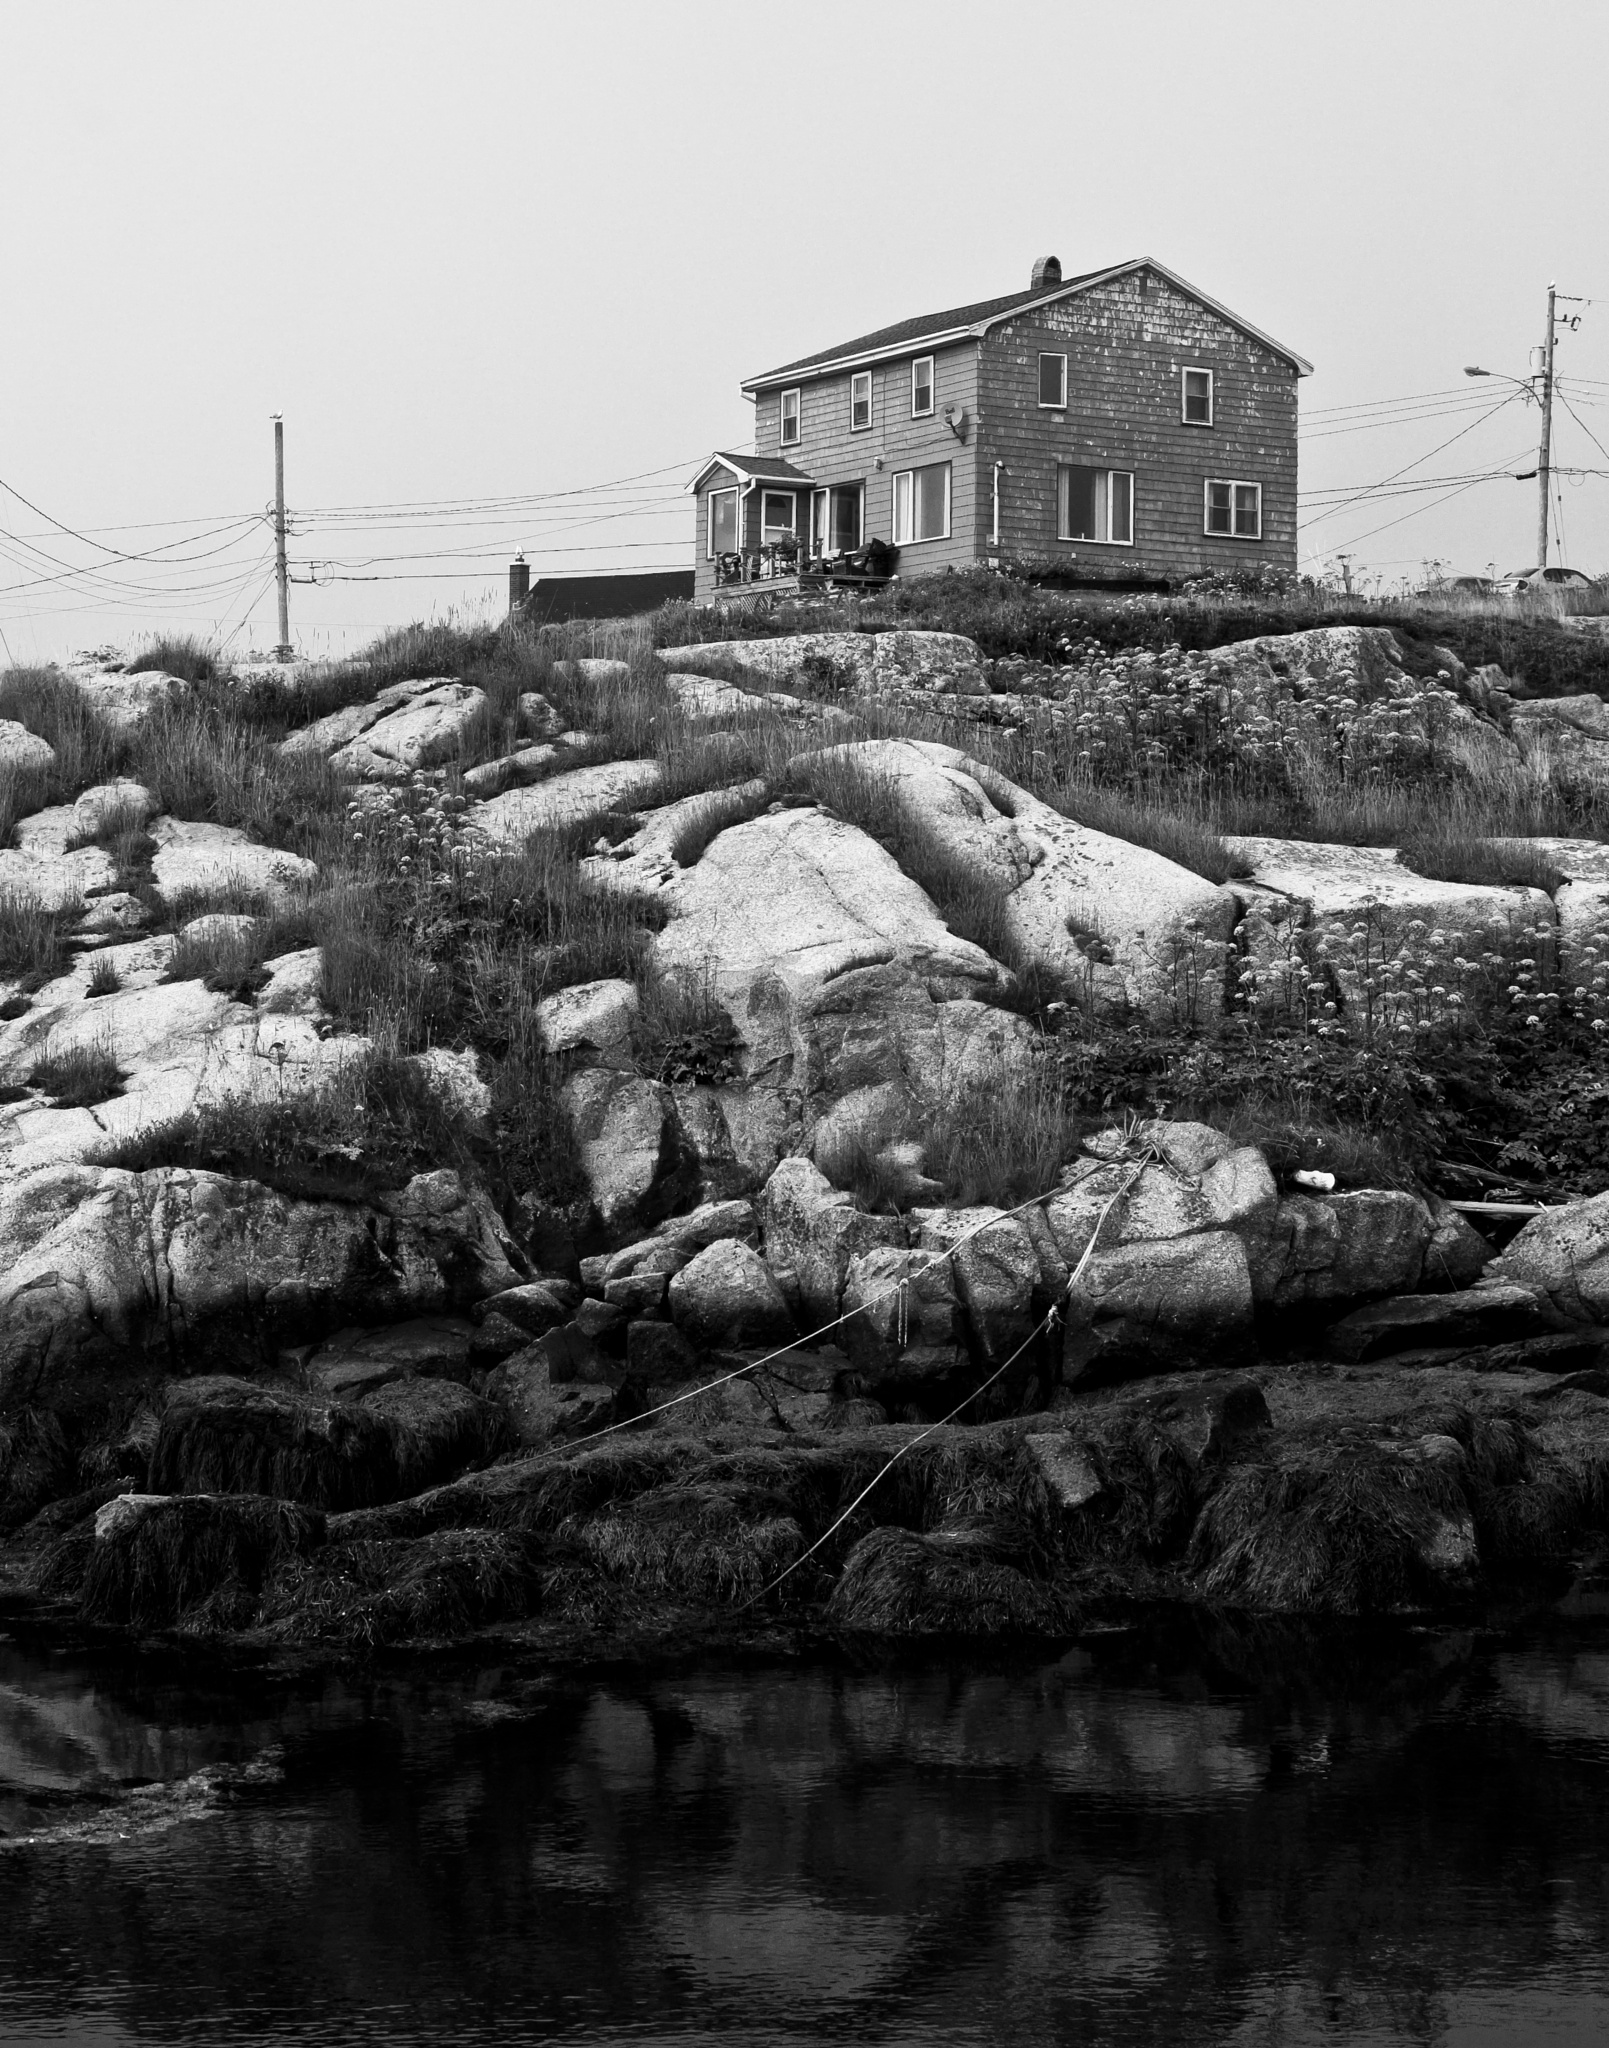 House On The Rocks by JamesJewers